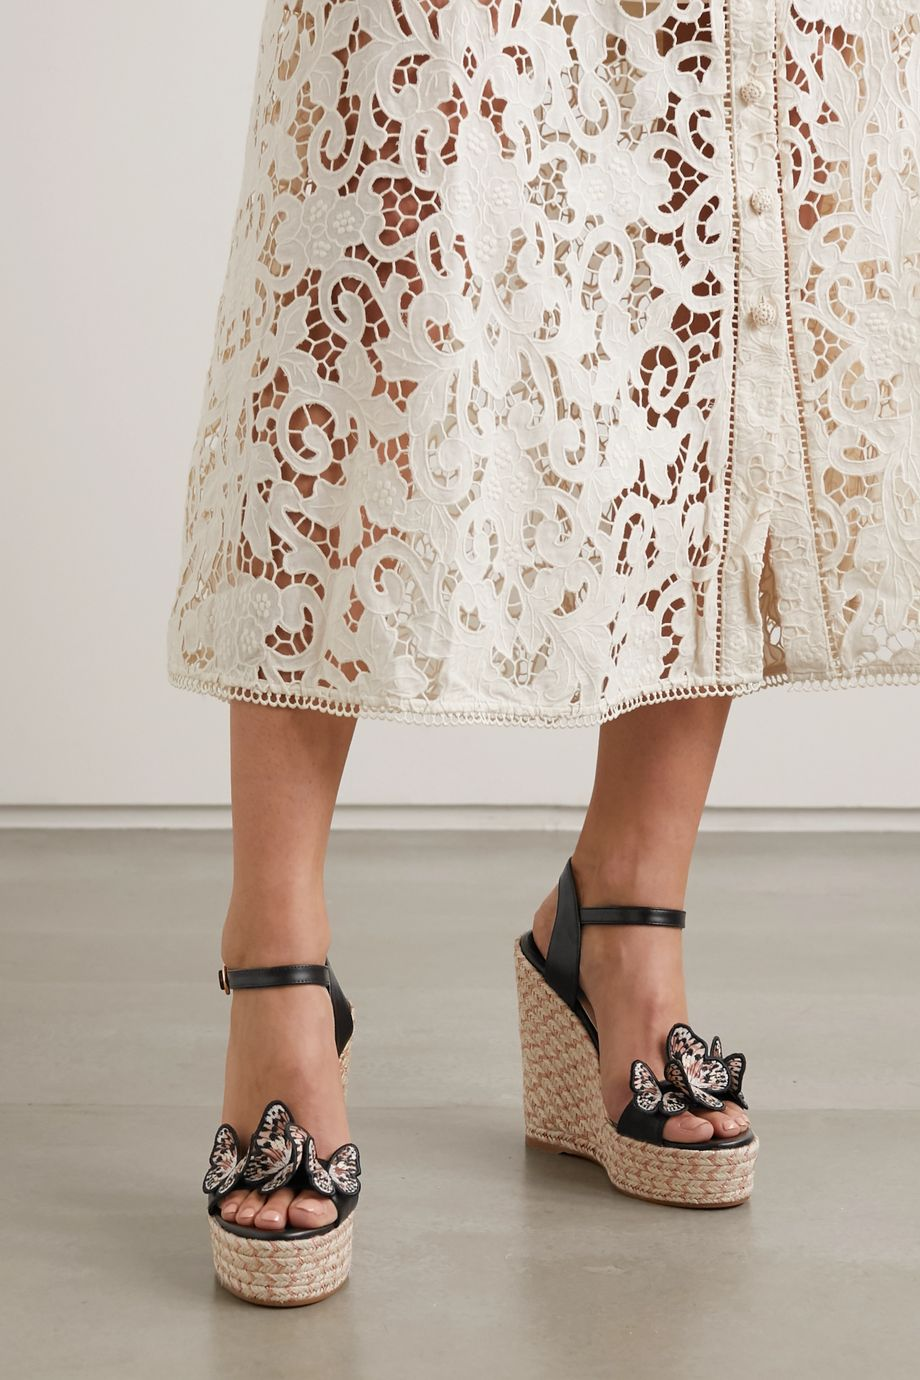 Sophia Webster Riva appliquéd leather espadrille wedge sandals